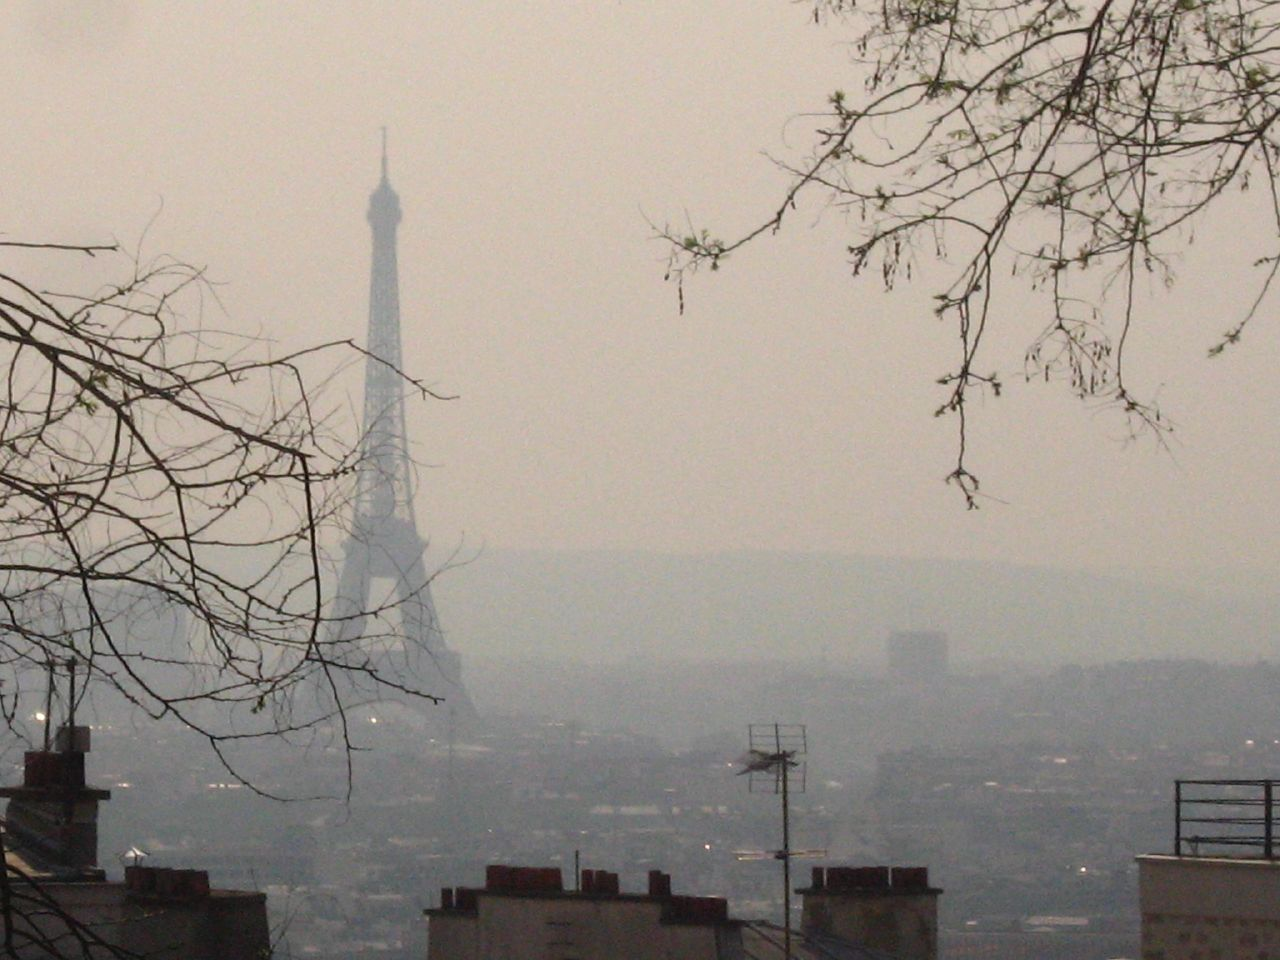 Smog, Soot, and Other Air Pollution from Transportation